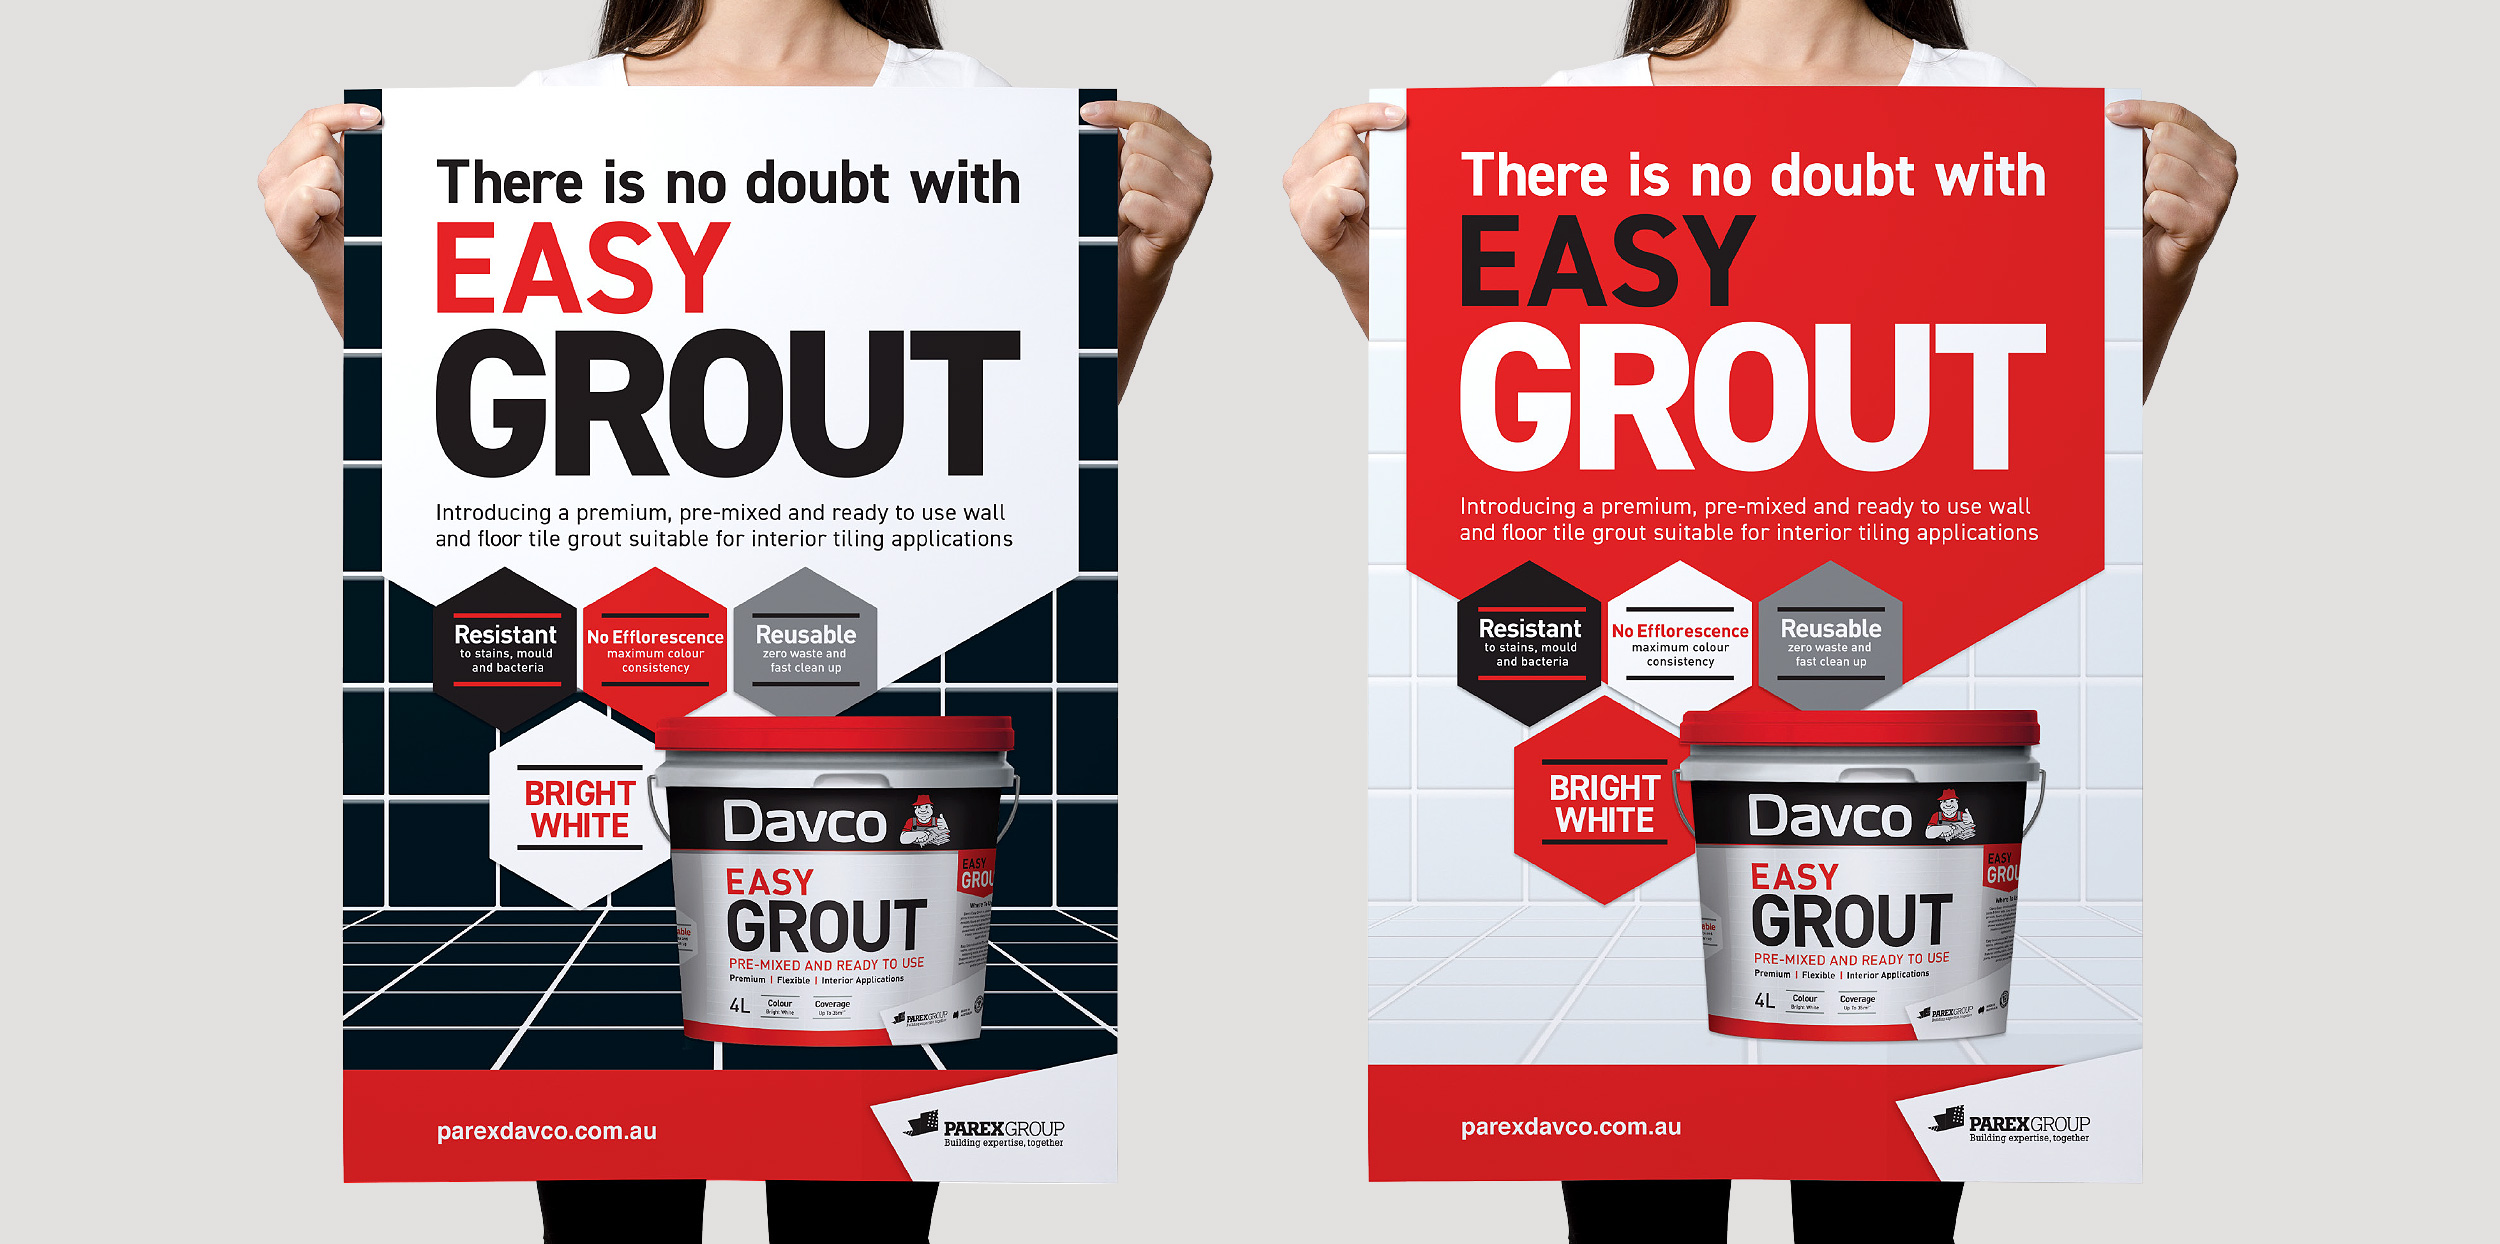 Handle-Branding-ParexGroup-Davco-Easy-Grout_02.jpg